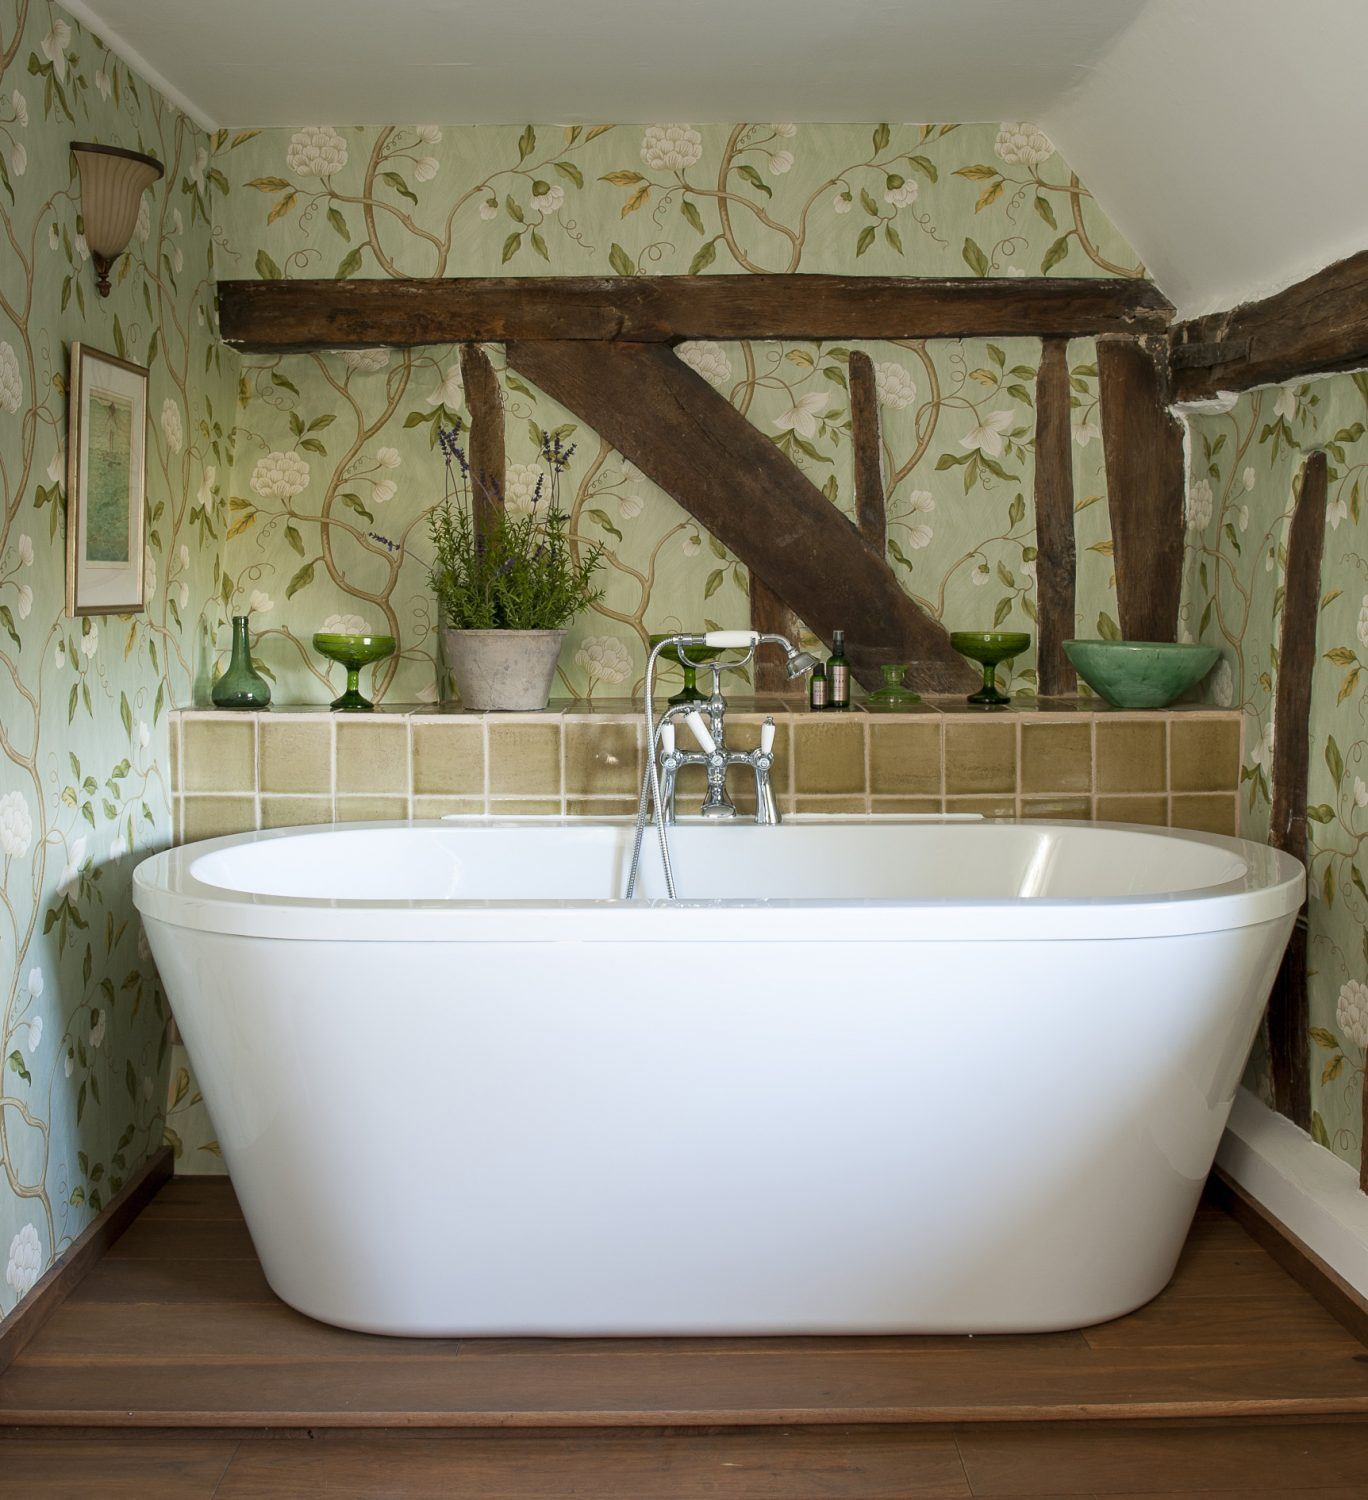 The bathroom was recently refurbished by their builder friend, Steve Moss. Eve chose the wallpaper, by Colefax & Fowler, because it looks as though it has been painted onto the wall